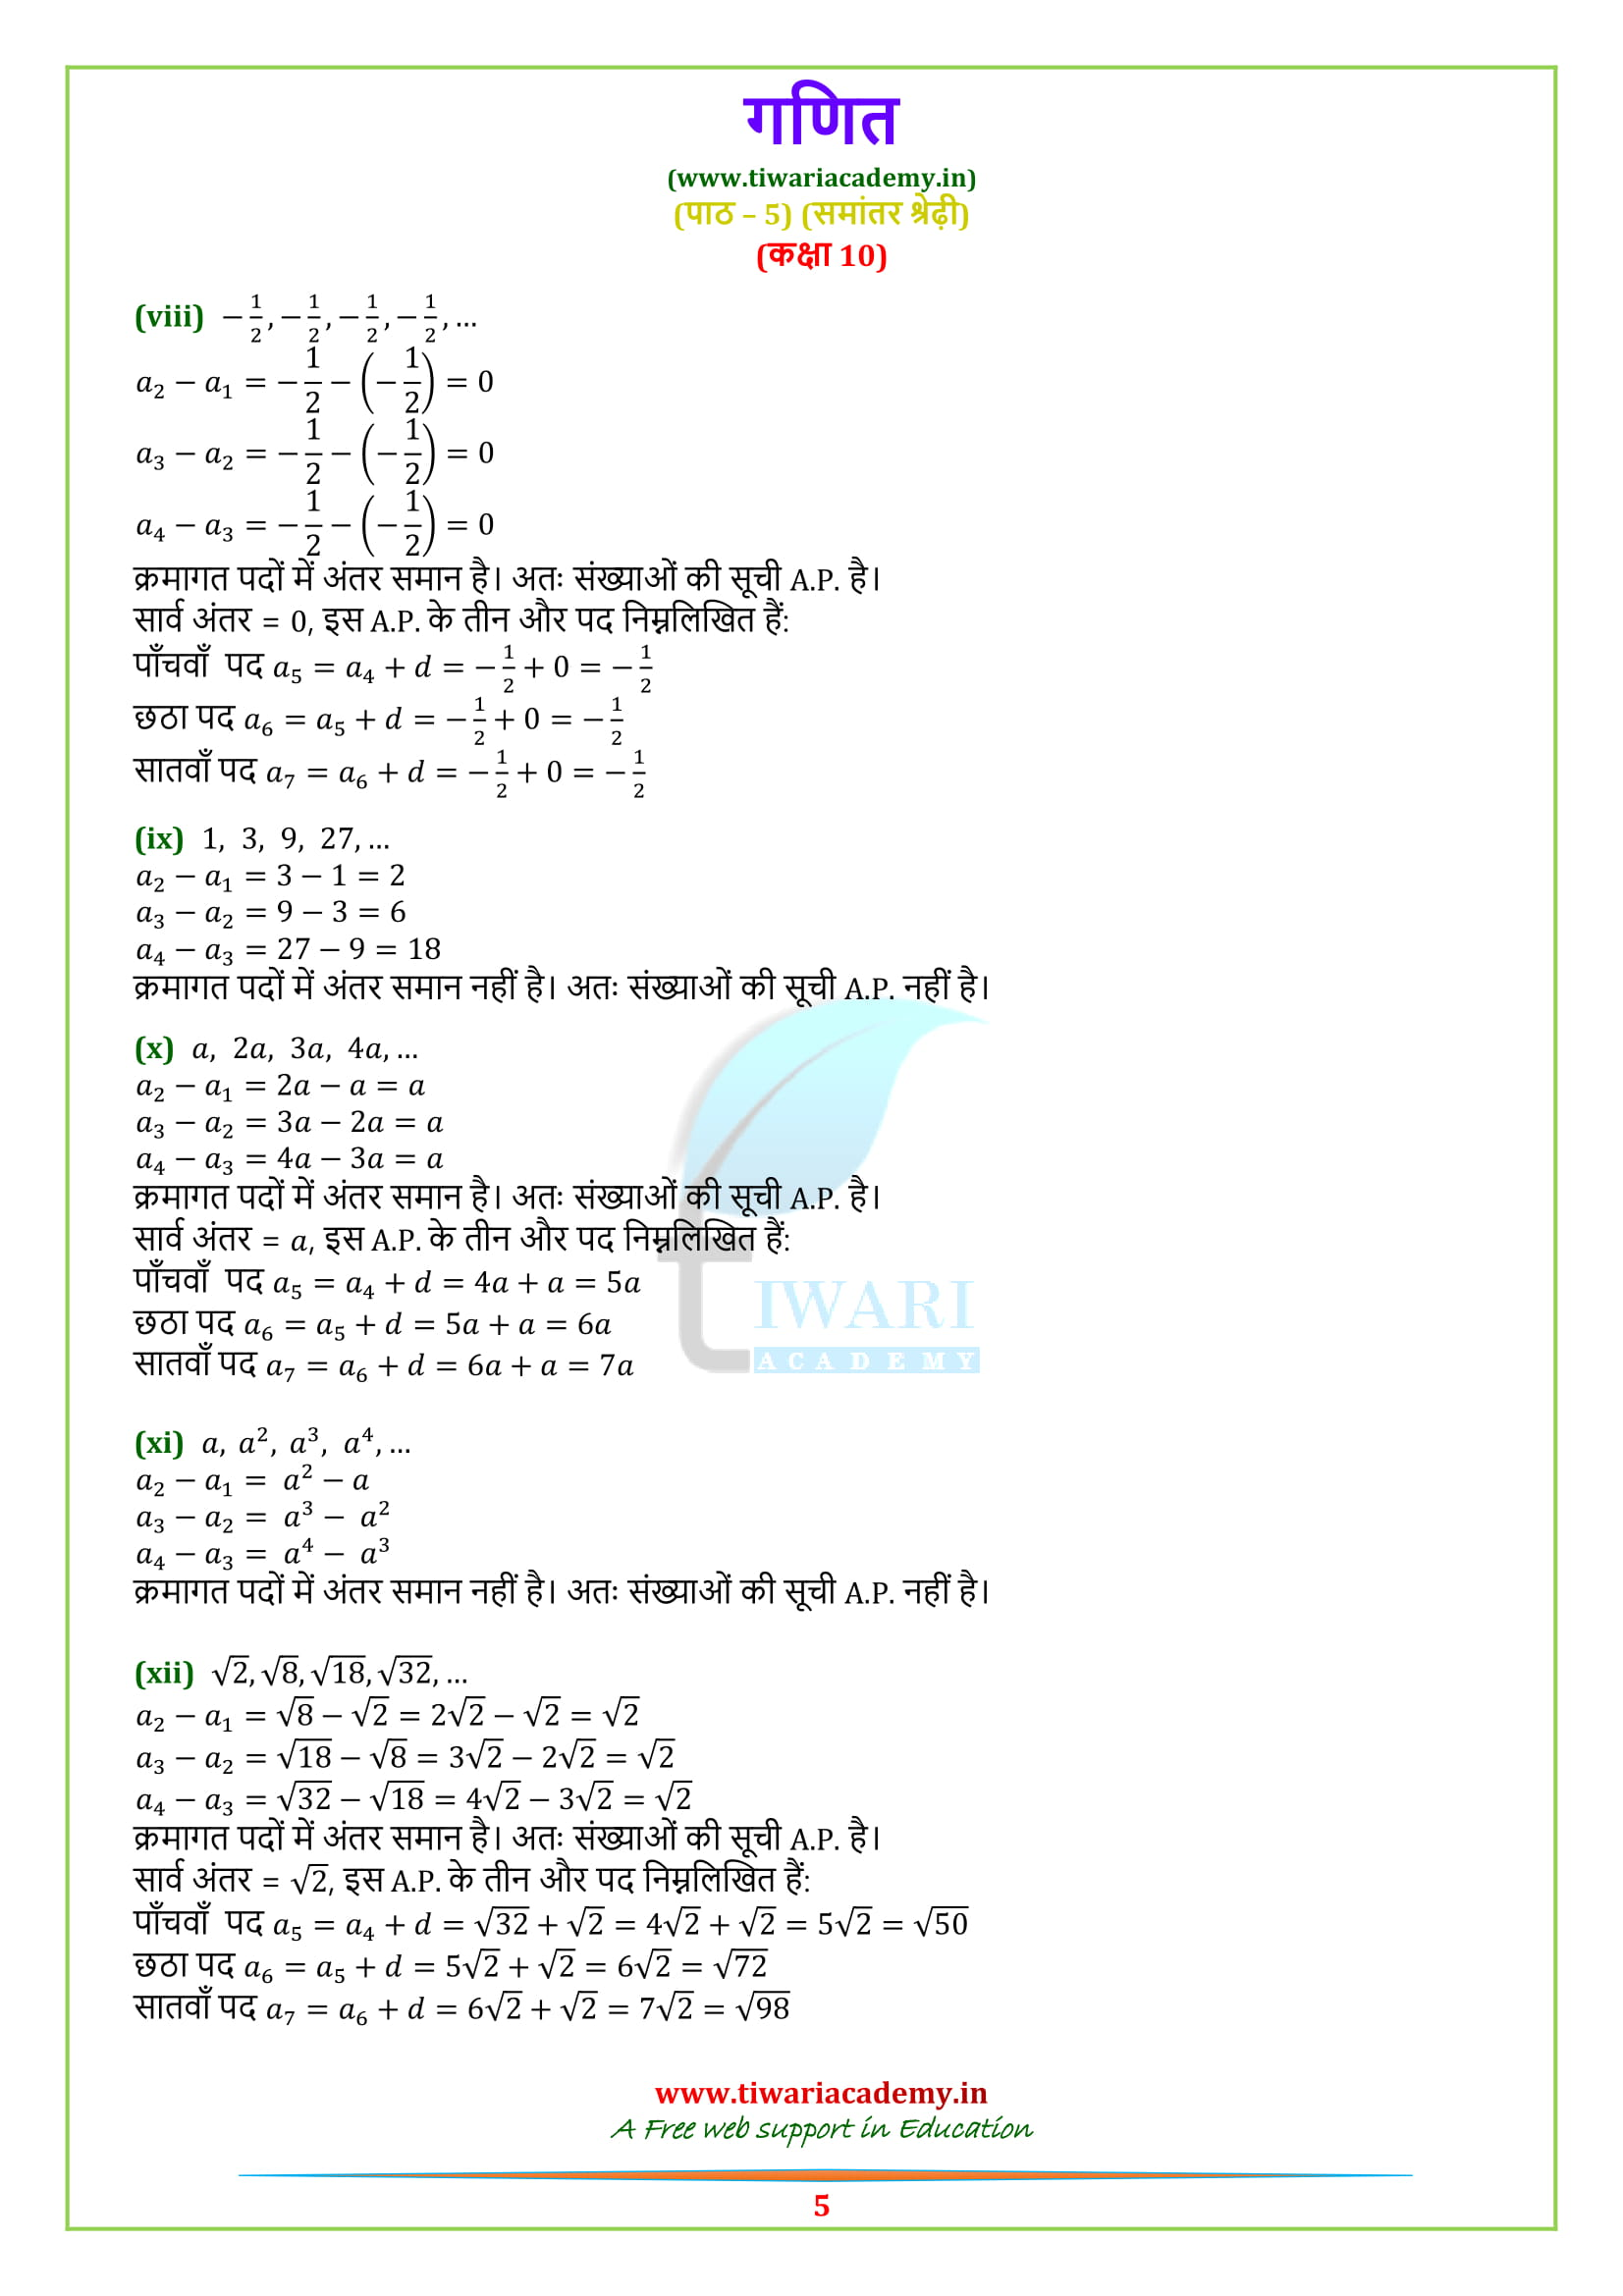 Class 10 Maths Exercise 5.1 Solutions updated format based on new syllabus